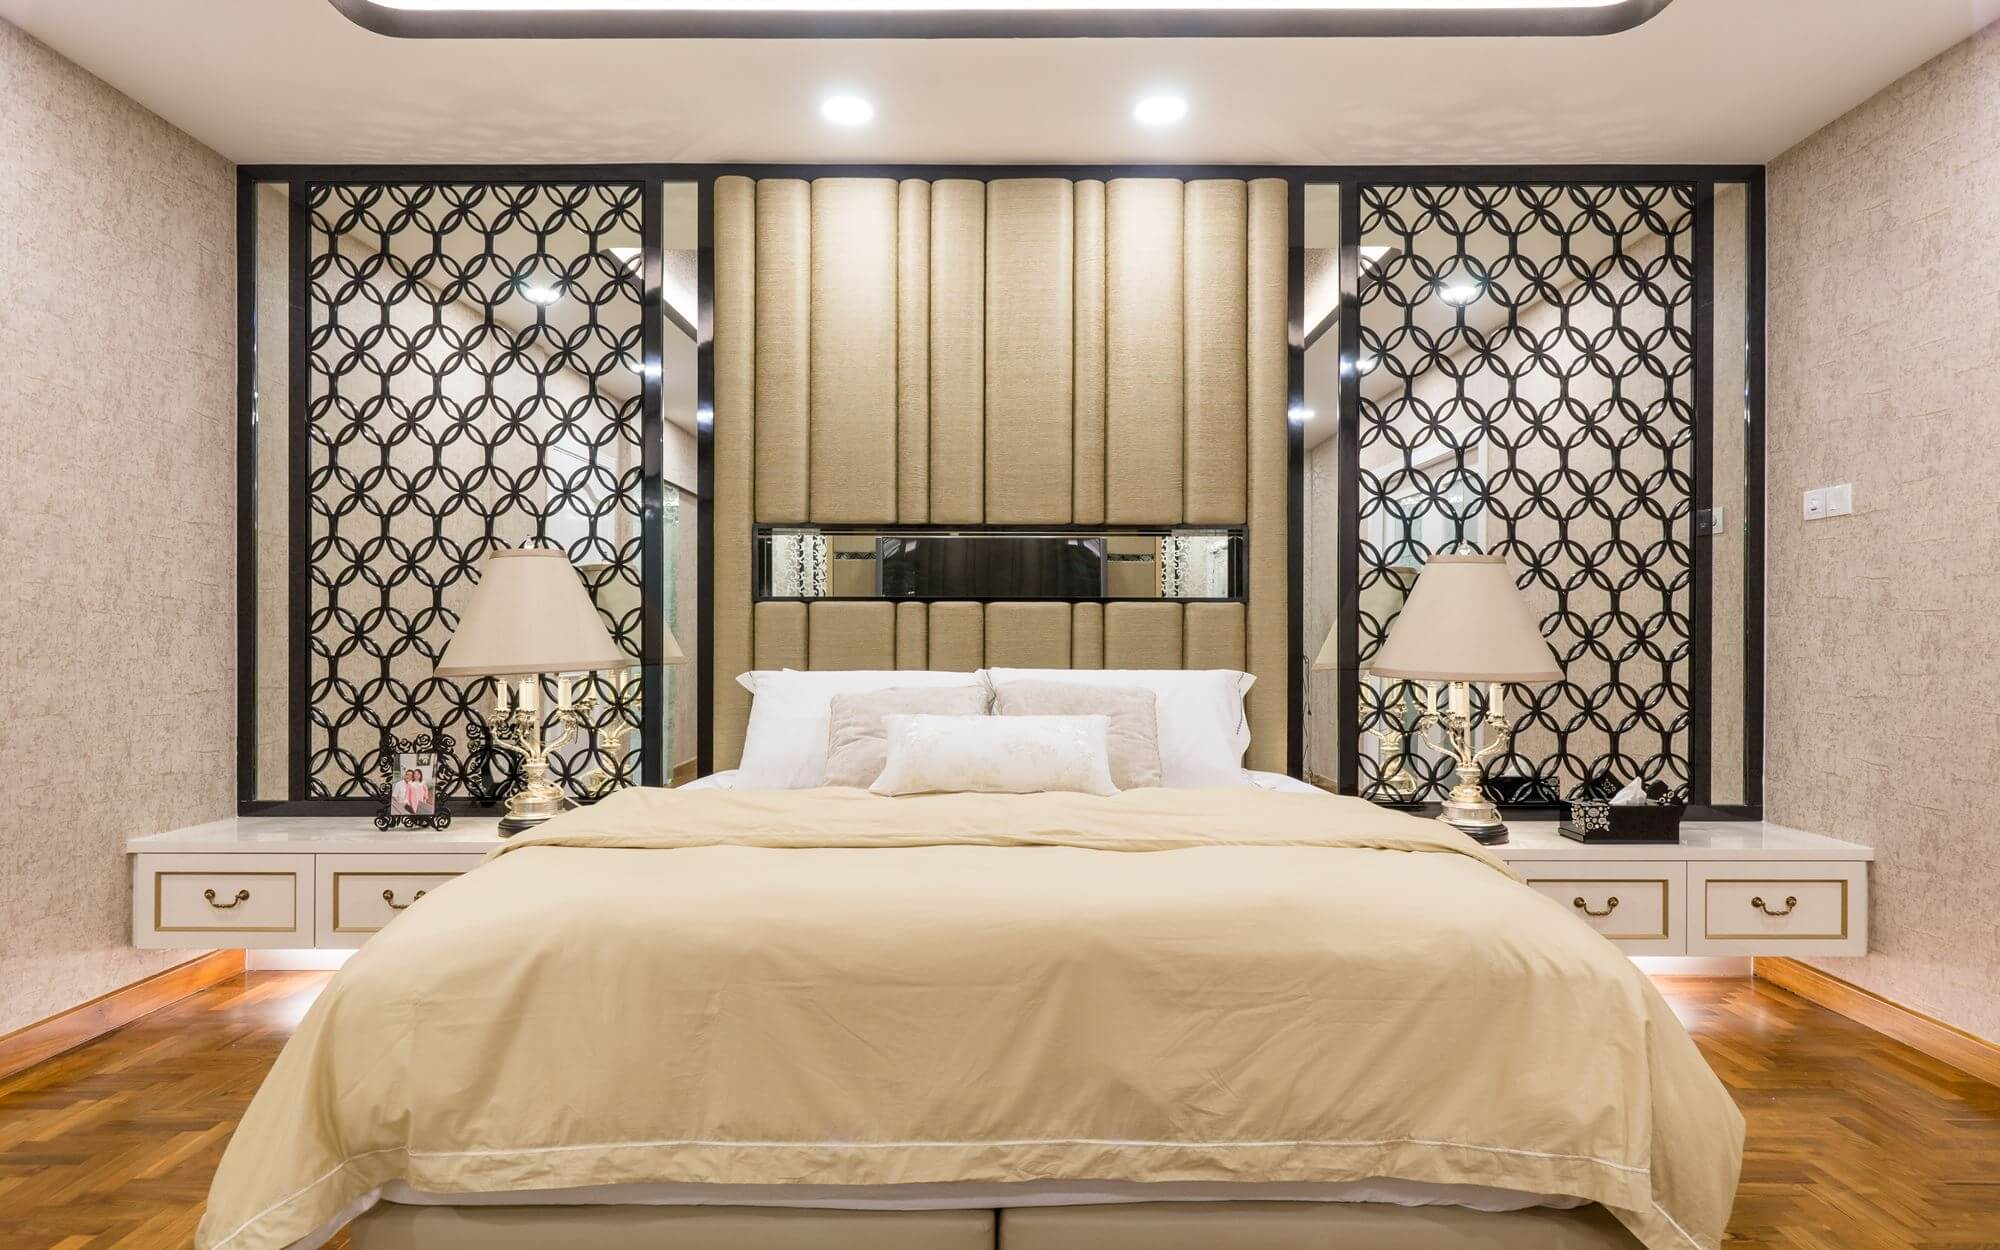 How to Design a Luxurious Master Bedroom - Interior Design ... on Luxury Master Bedroom  id=19494